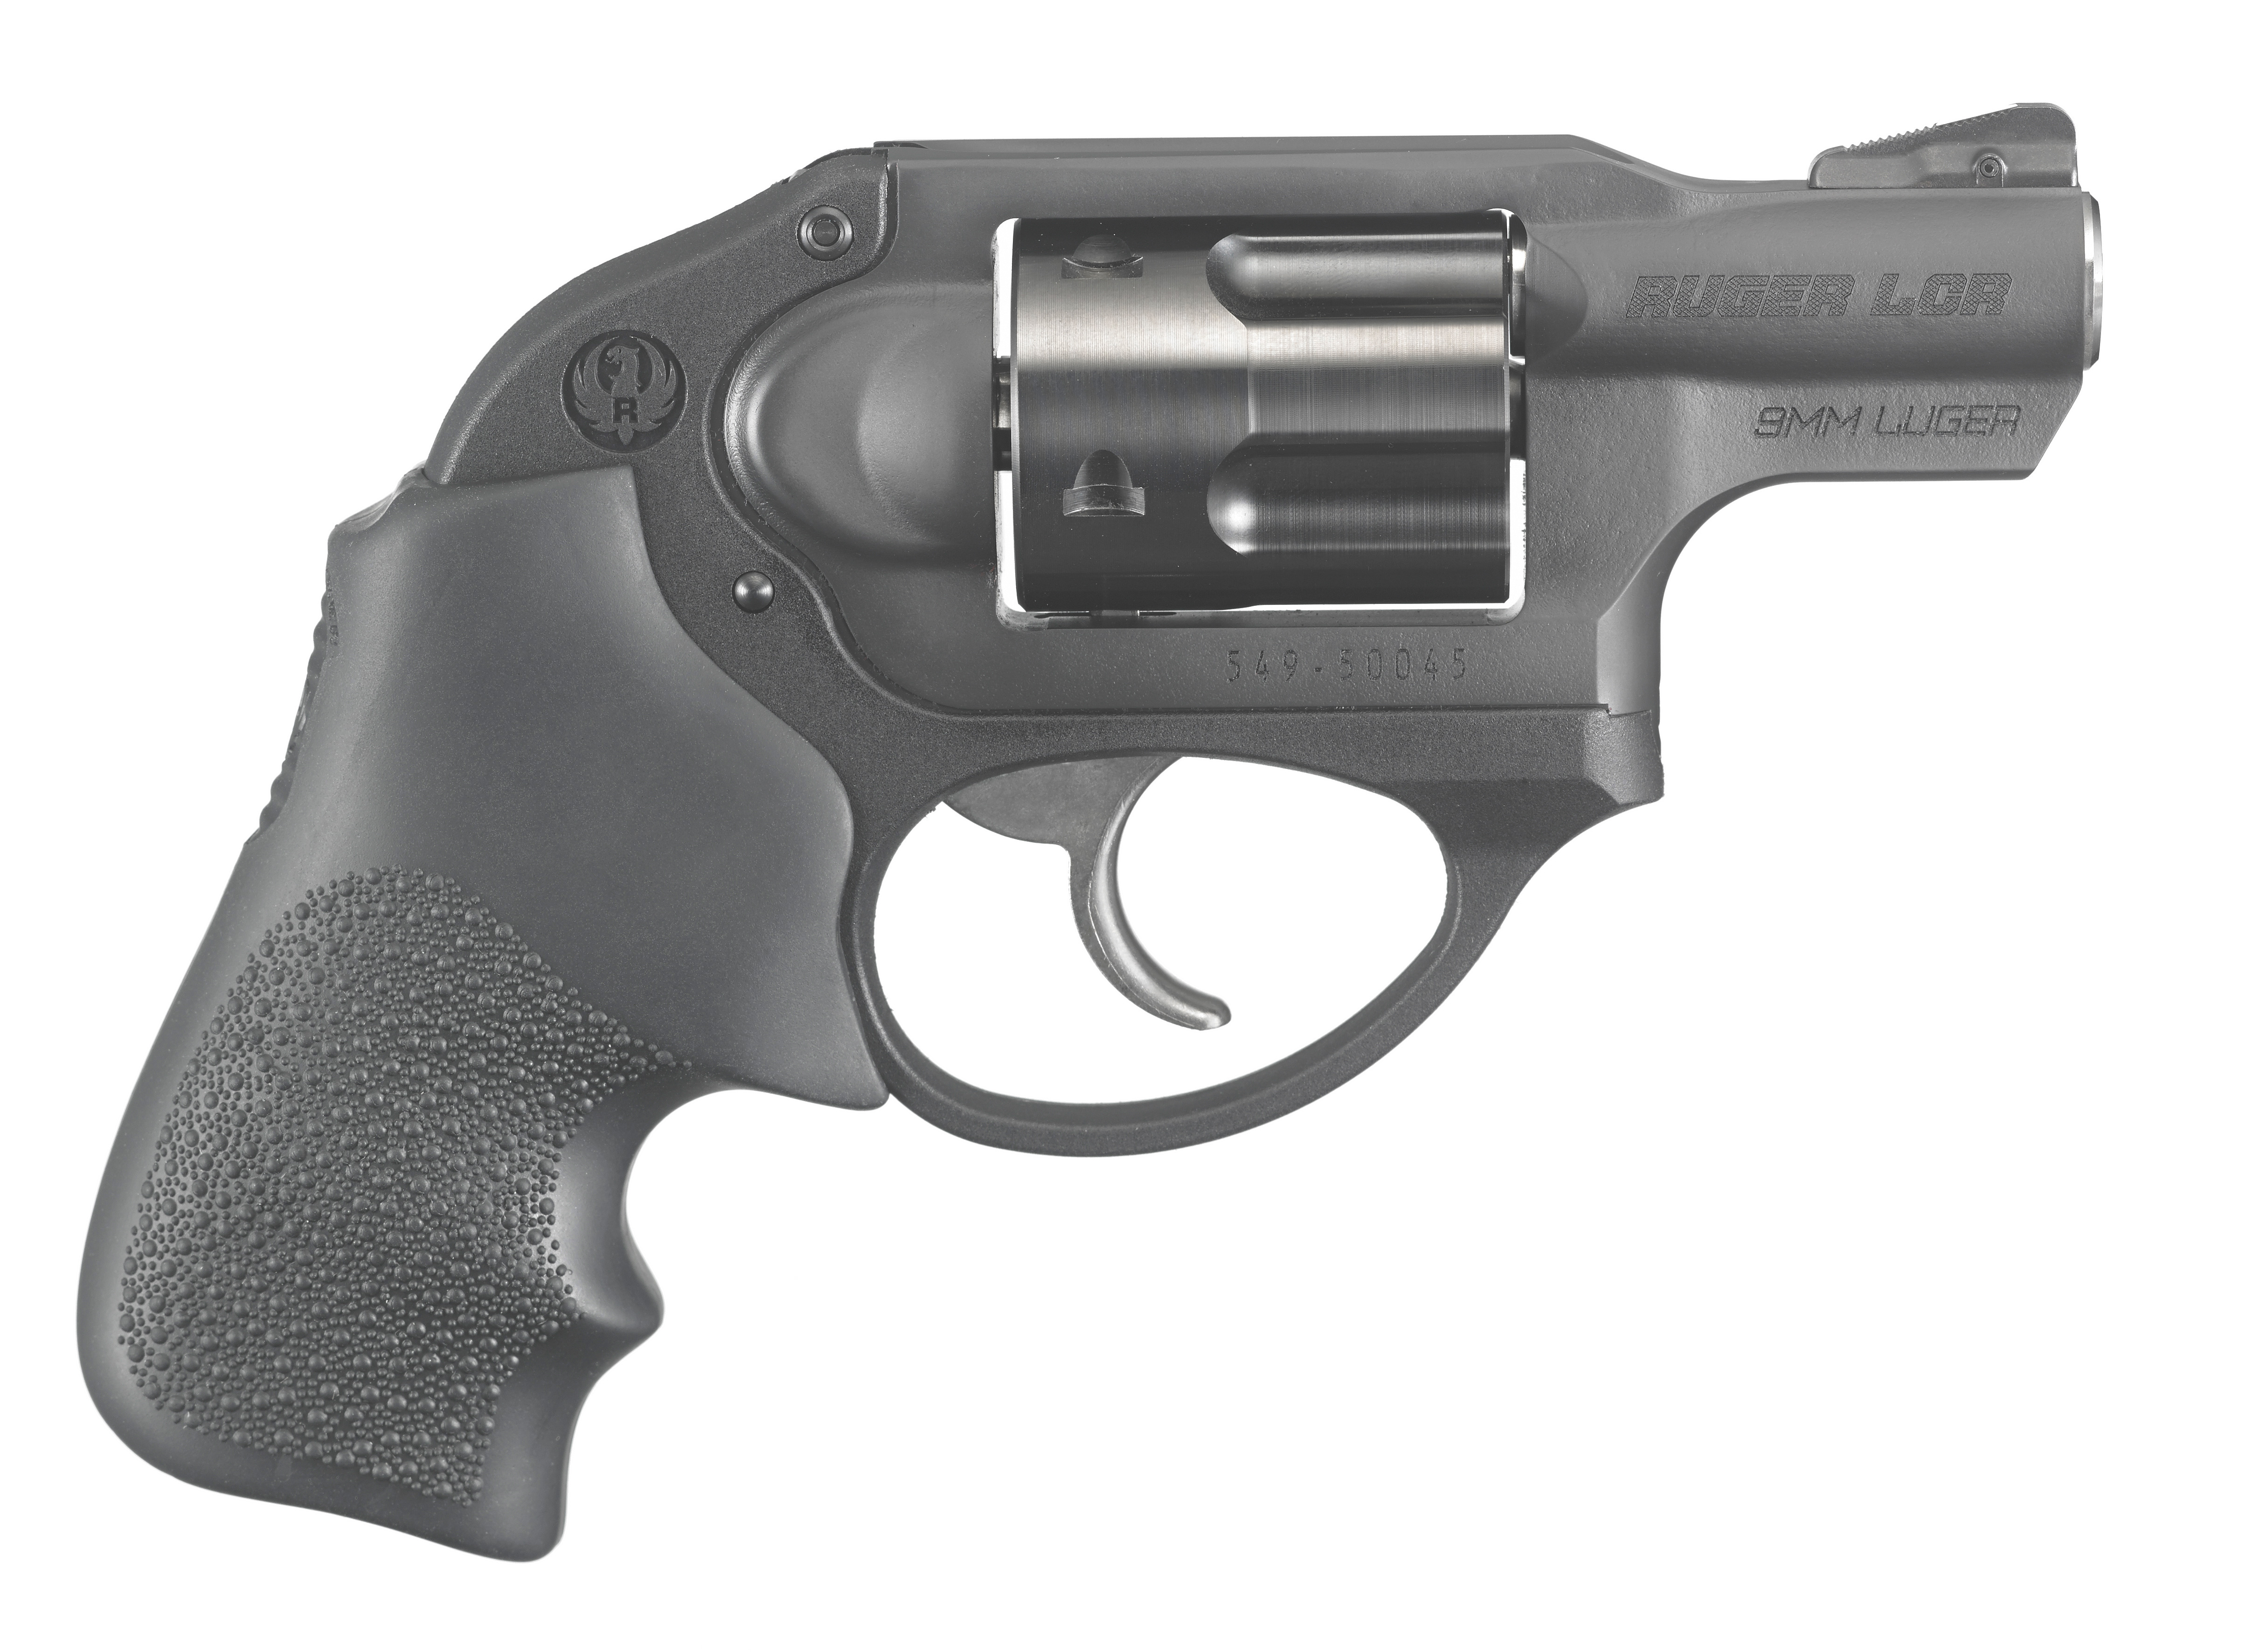 Ruger LCR in 9mm Parabellum